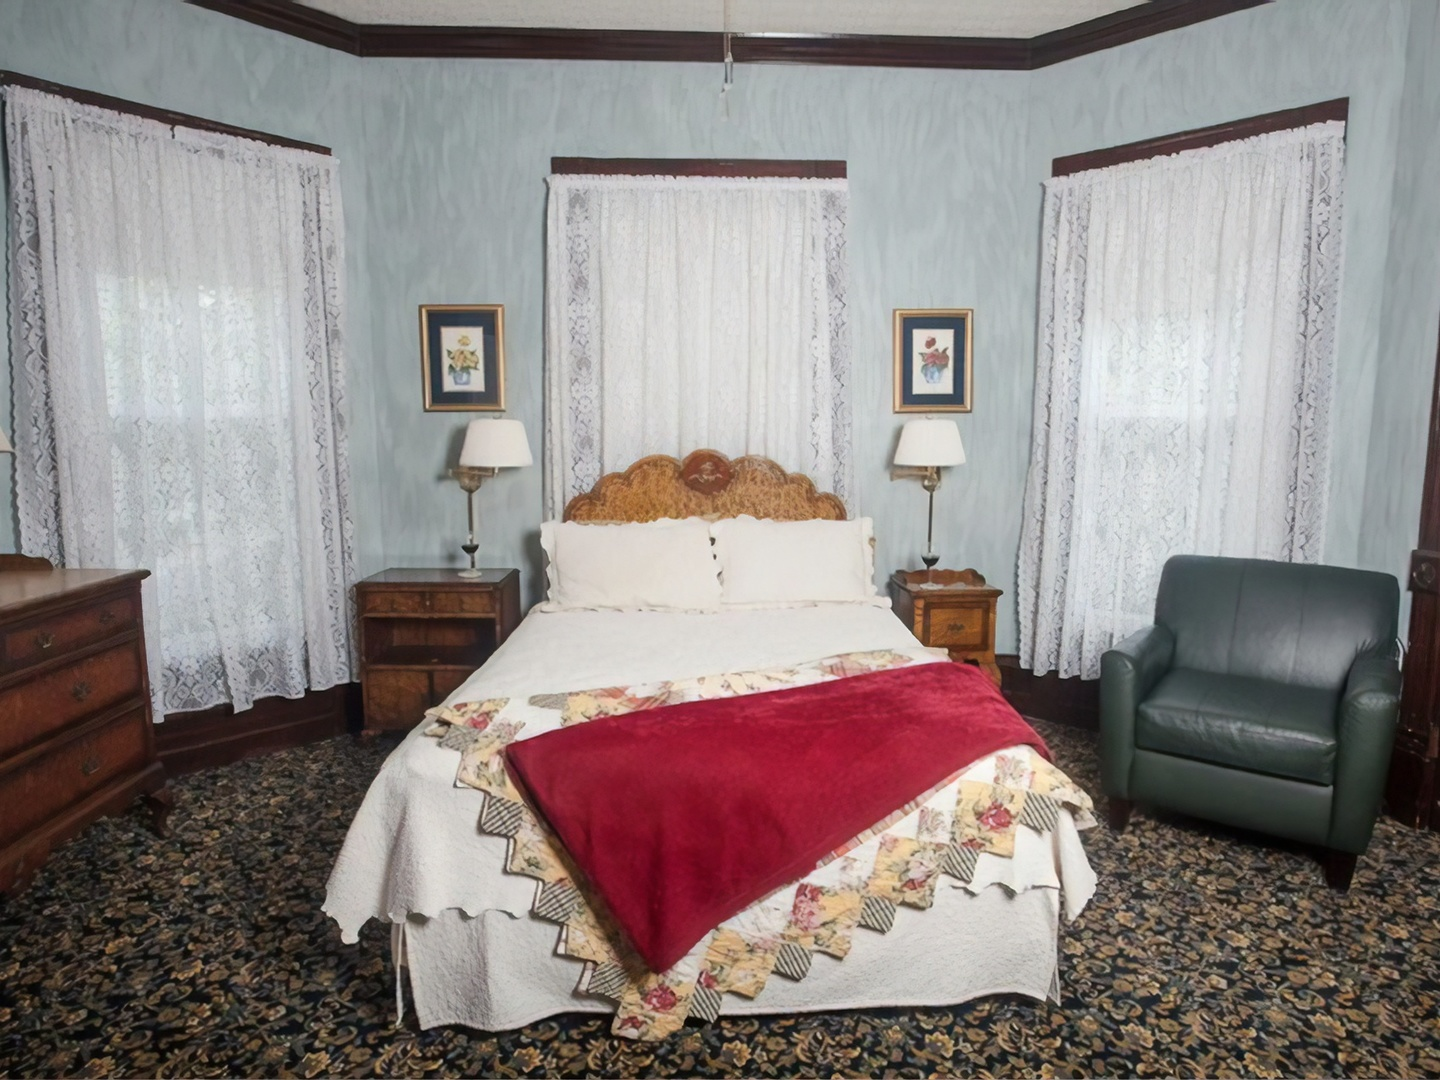 A bedroom with a large bed sitting in a room at Market Street Inn Bed and Breakfast.